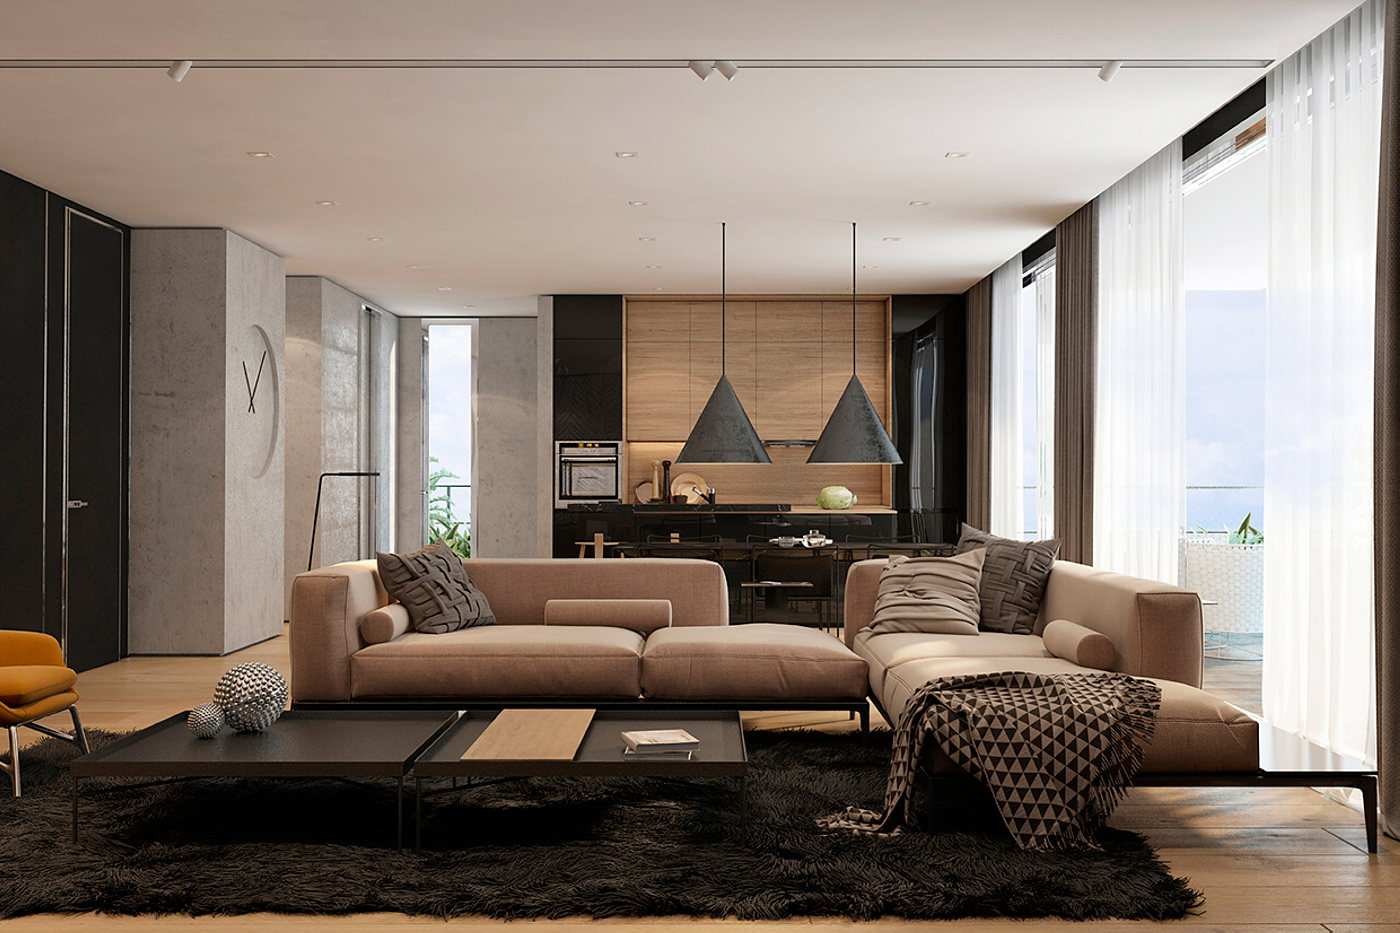 interior of modern apartments in tel aviv from iryna dzhemesiuk interior of modern apartments in tel aviv from iryna dzhemesiuk 1